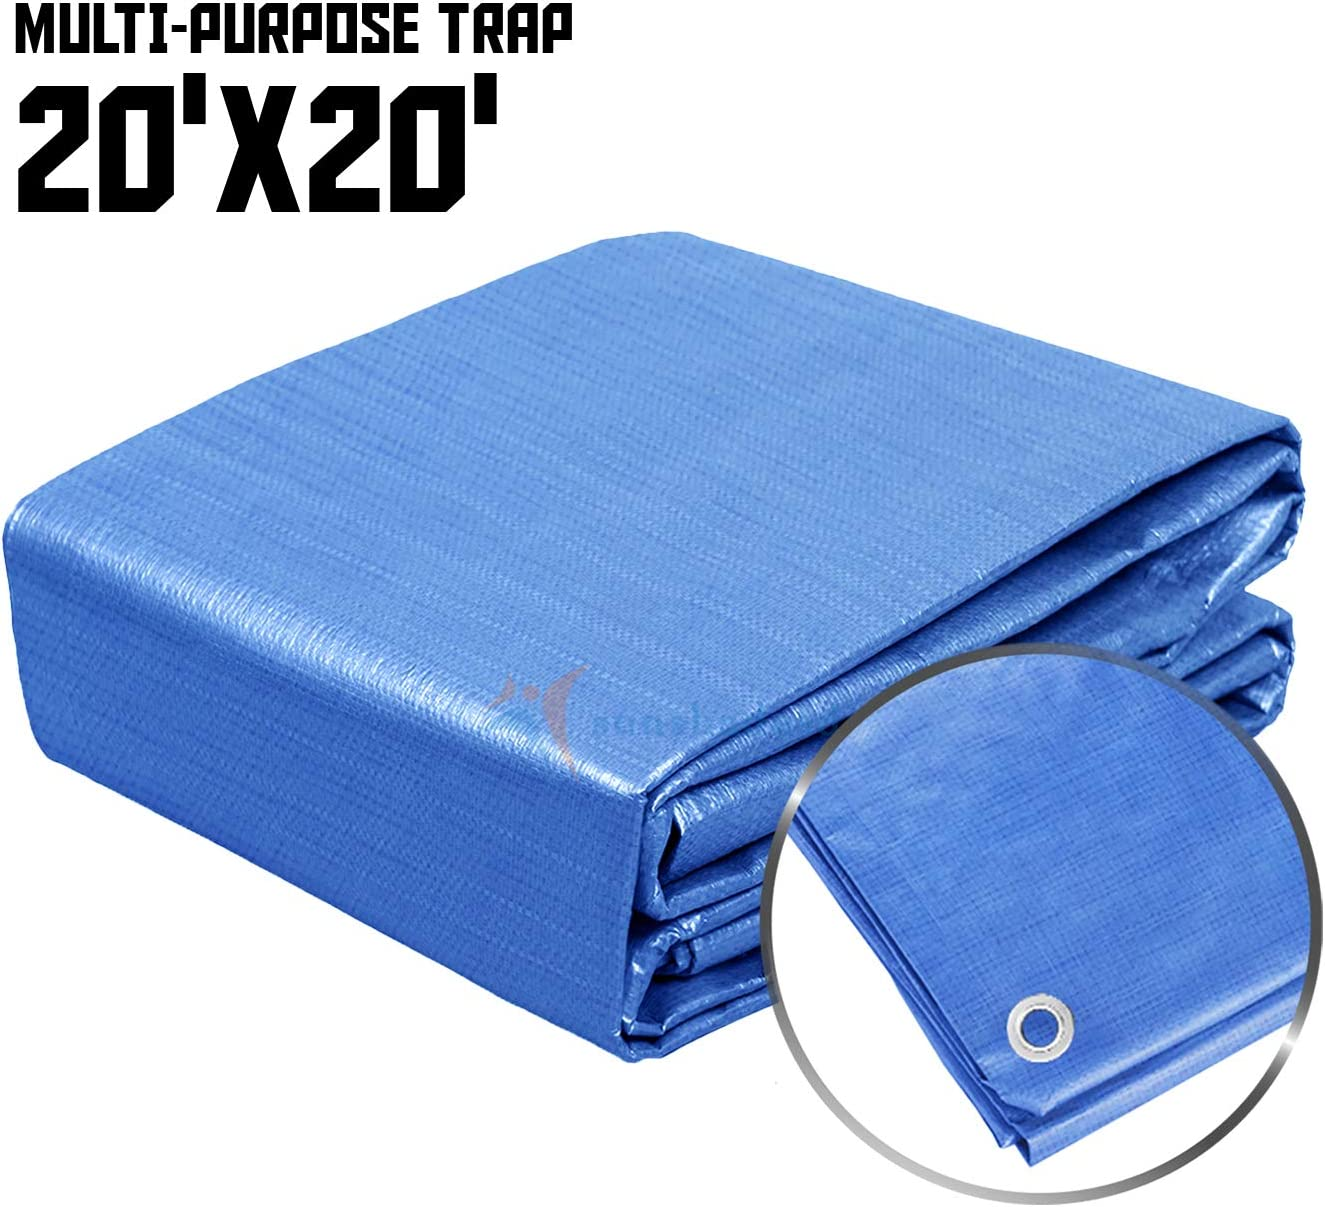 Sunshades Depot 20x20 Feet General Multi-Purpose 5 Mil Waterproof Blue Multi Purpose Waterproof Poly Tarp Cover 5 Mil Thick 8x8 Weave